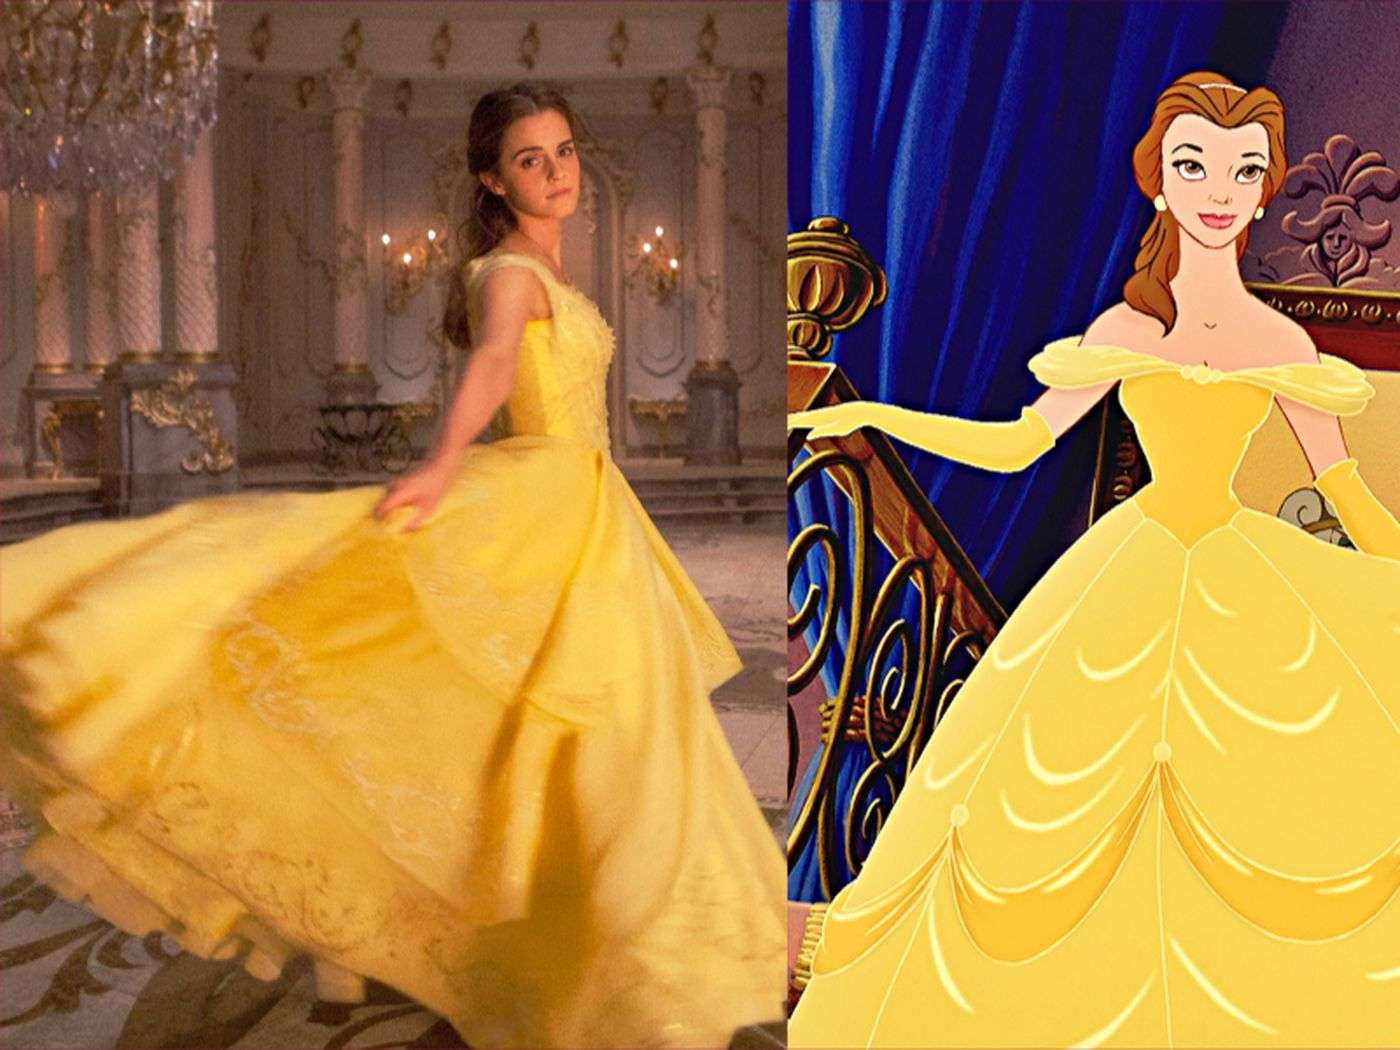 Belle S Costumes Don T Fit The Live Action Beauty And The Beast But They Fit Her Brand Vox